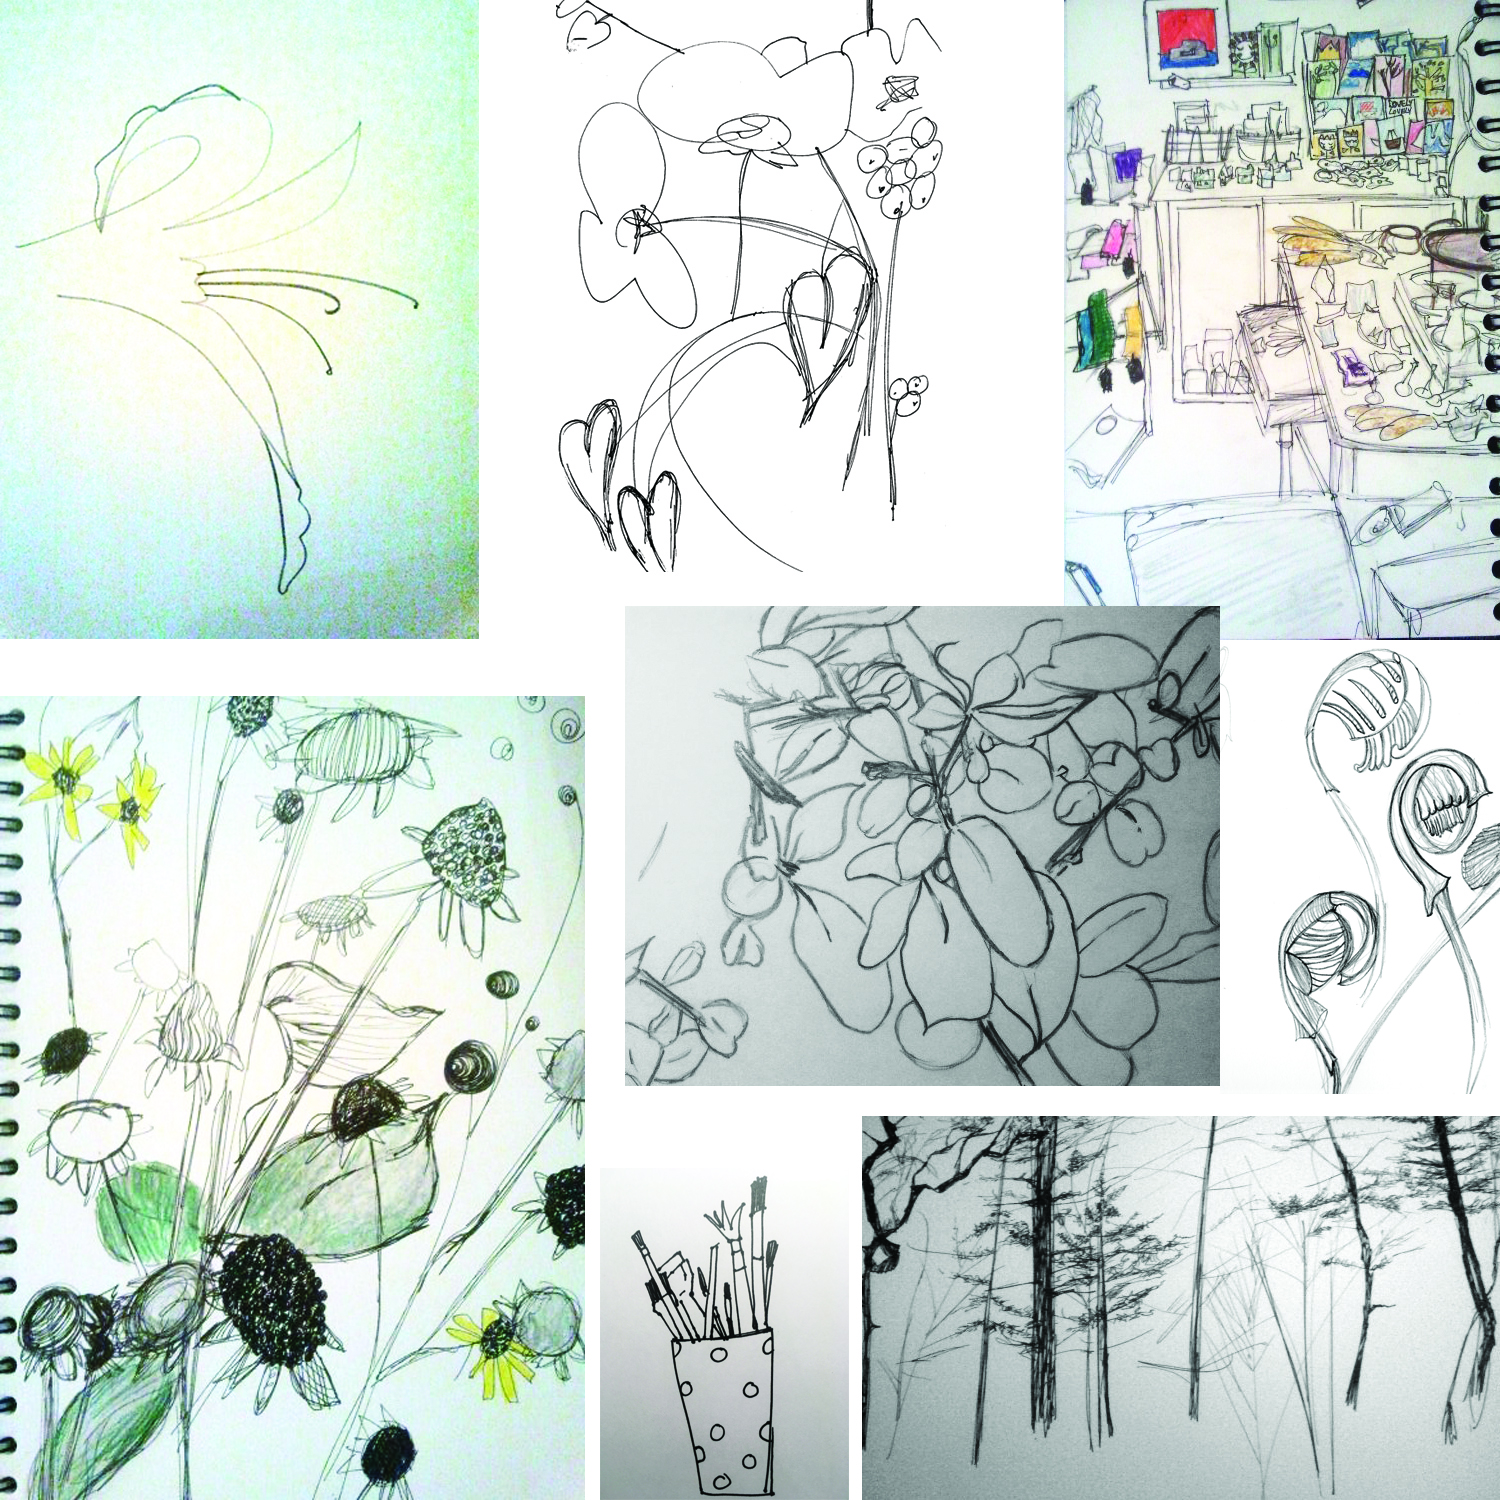 My first sketches. 2012.